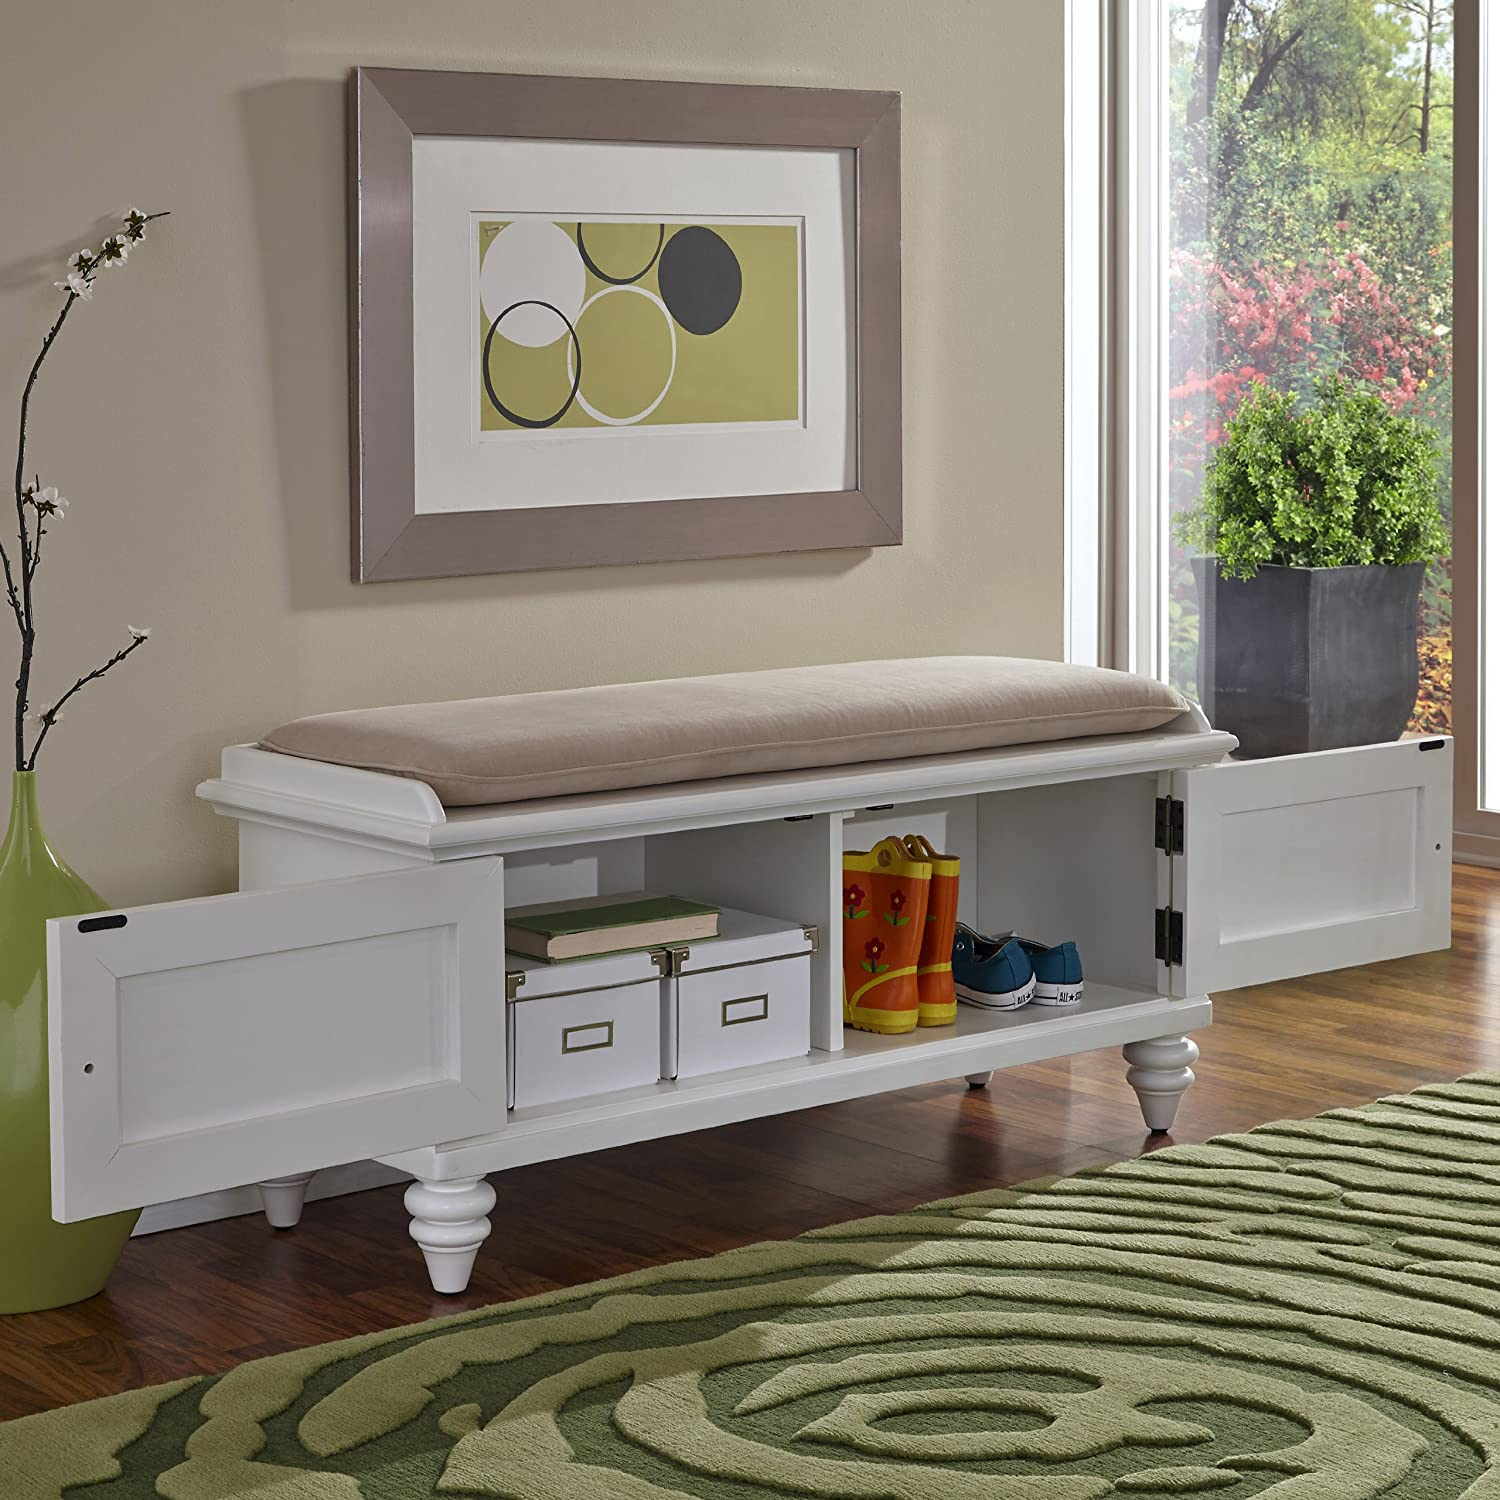 Amazon.com: Home Styles Bermuda Upholstered Bench, Brushed White ...